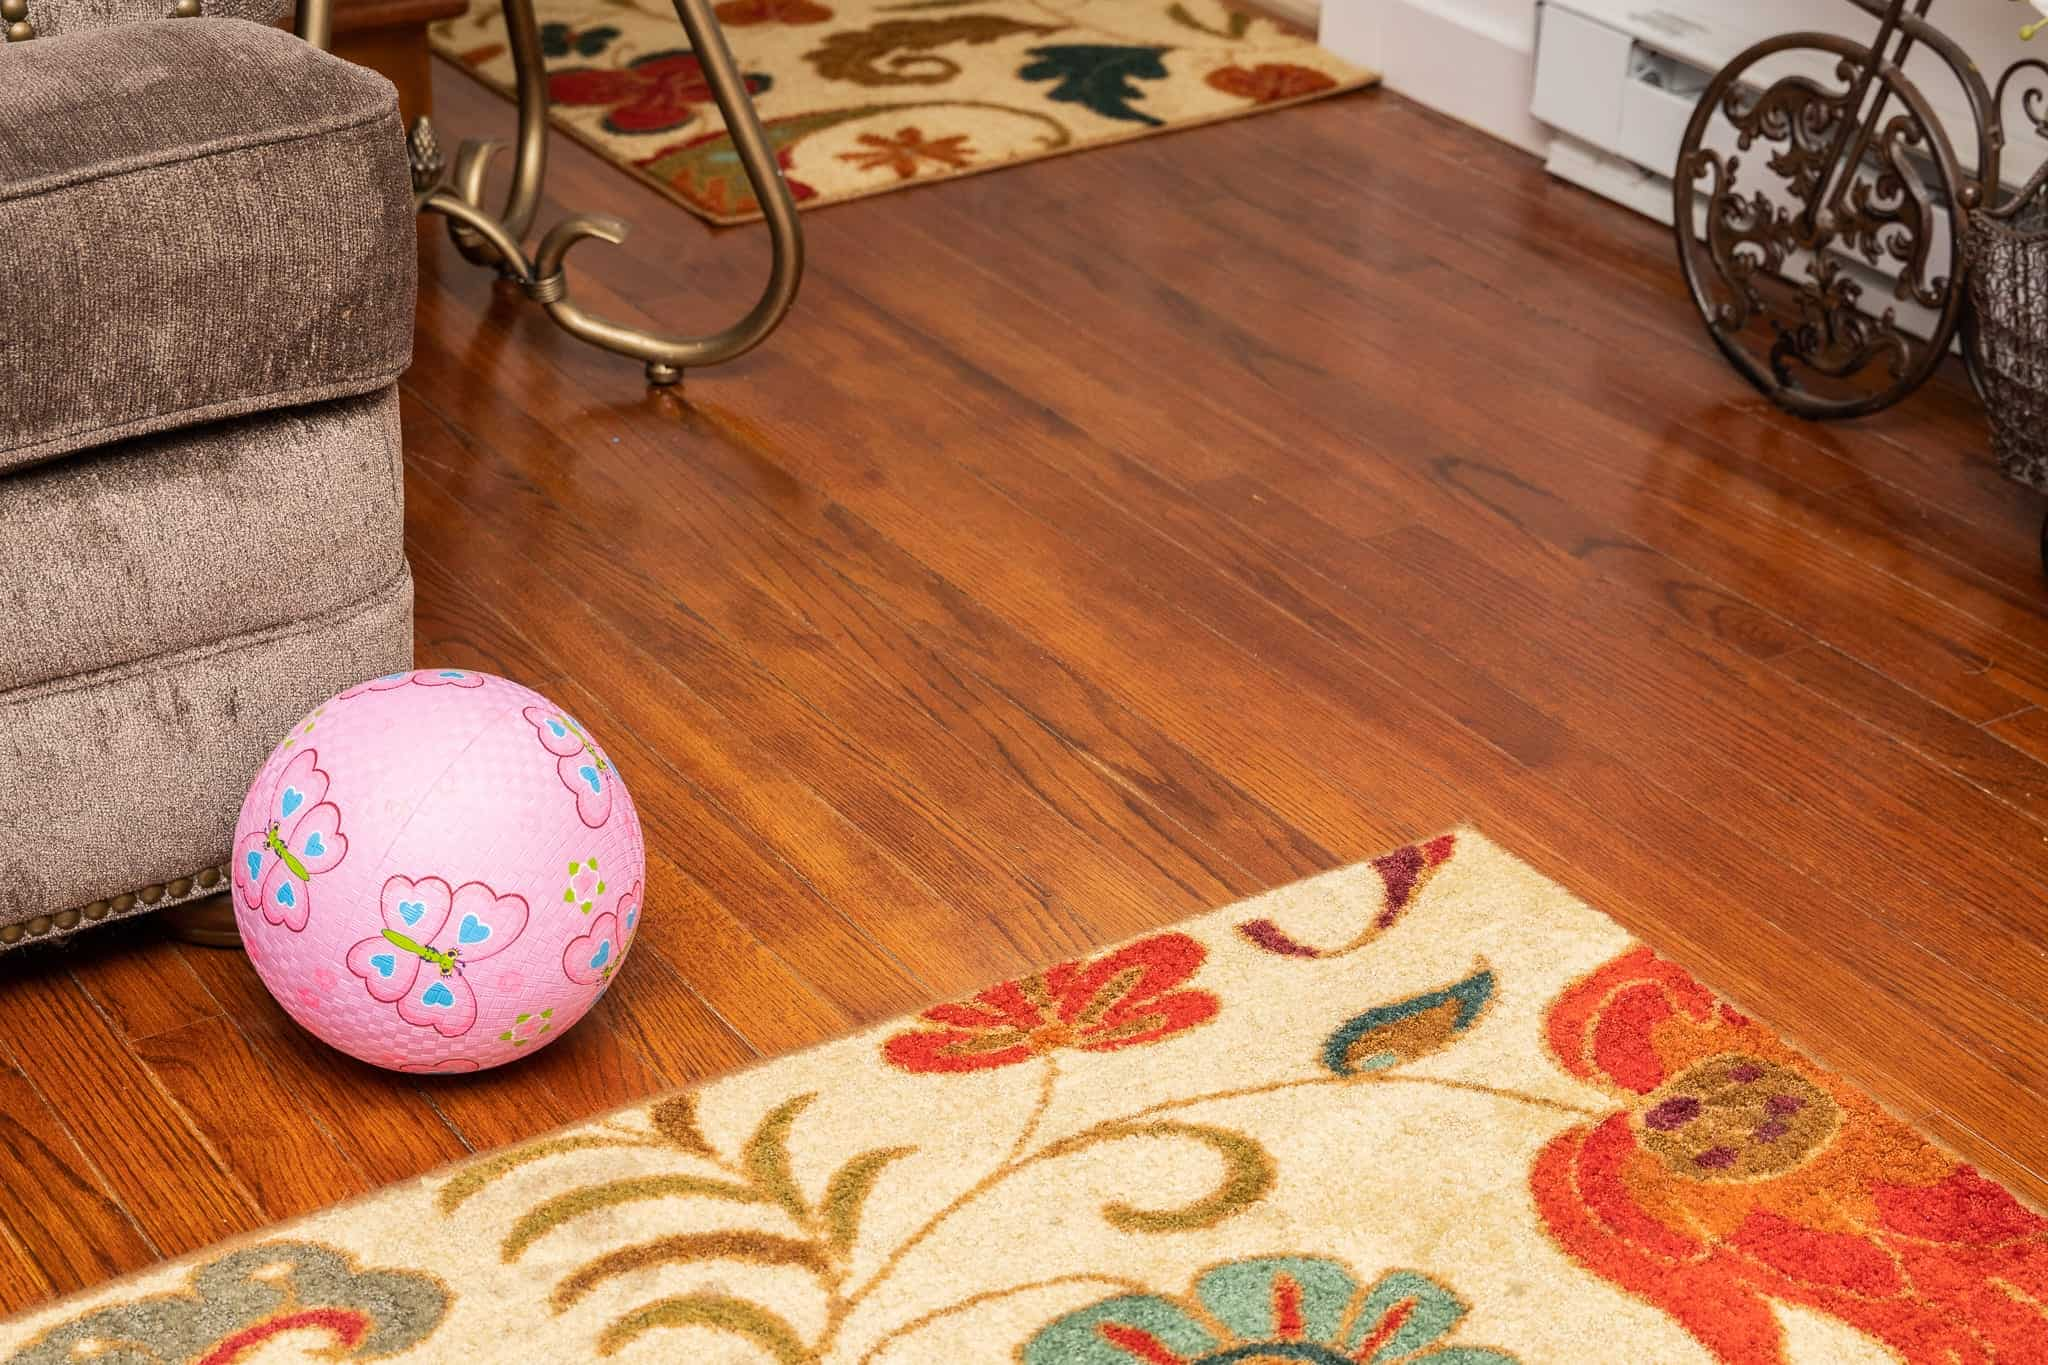 How To Clean And Make Your Hardwood Floor Look Glossy For Days